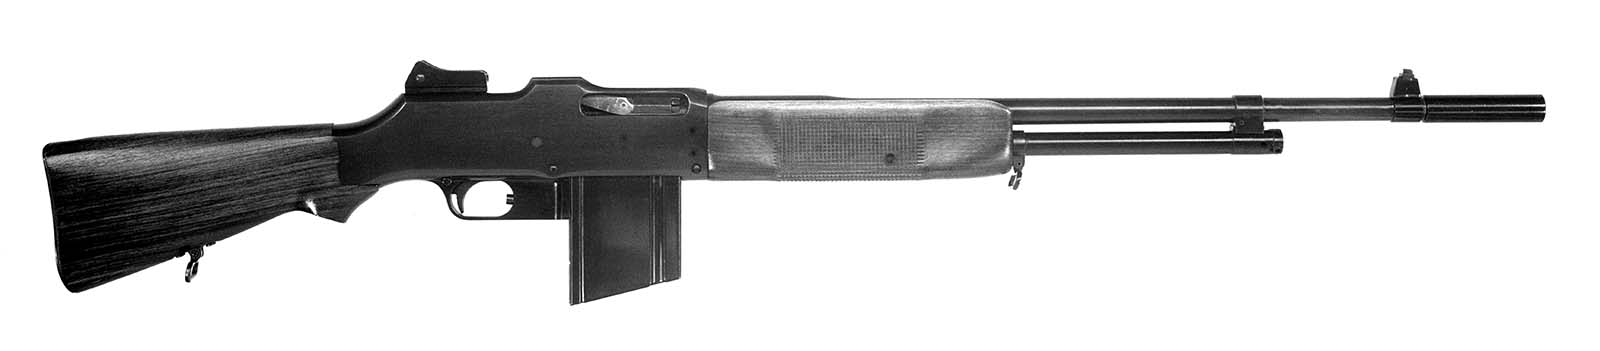 Winchester Model 1918 Browning Automatic Rifle (BAR). MS 20 Winchester Repeating Arms Company Archive, McCracken Research Library. P.20.2240